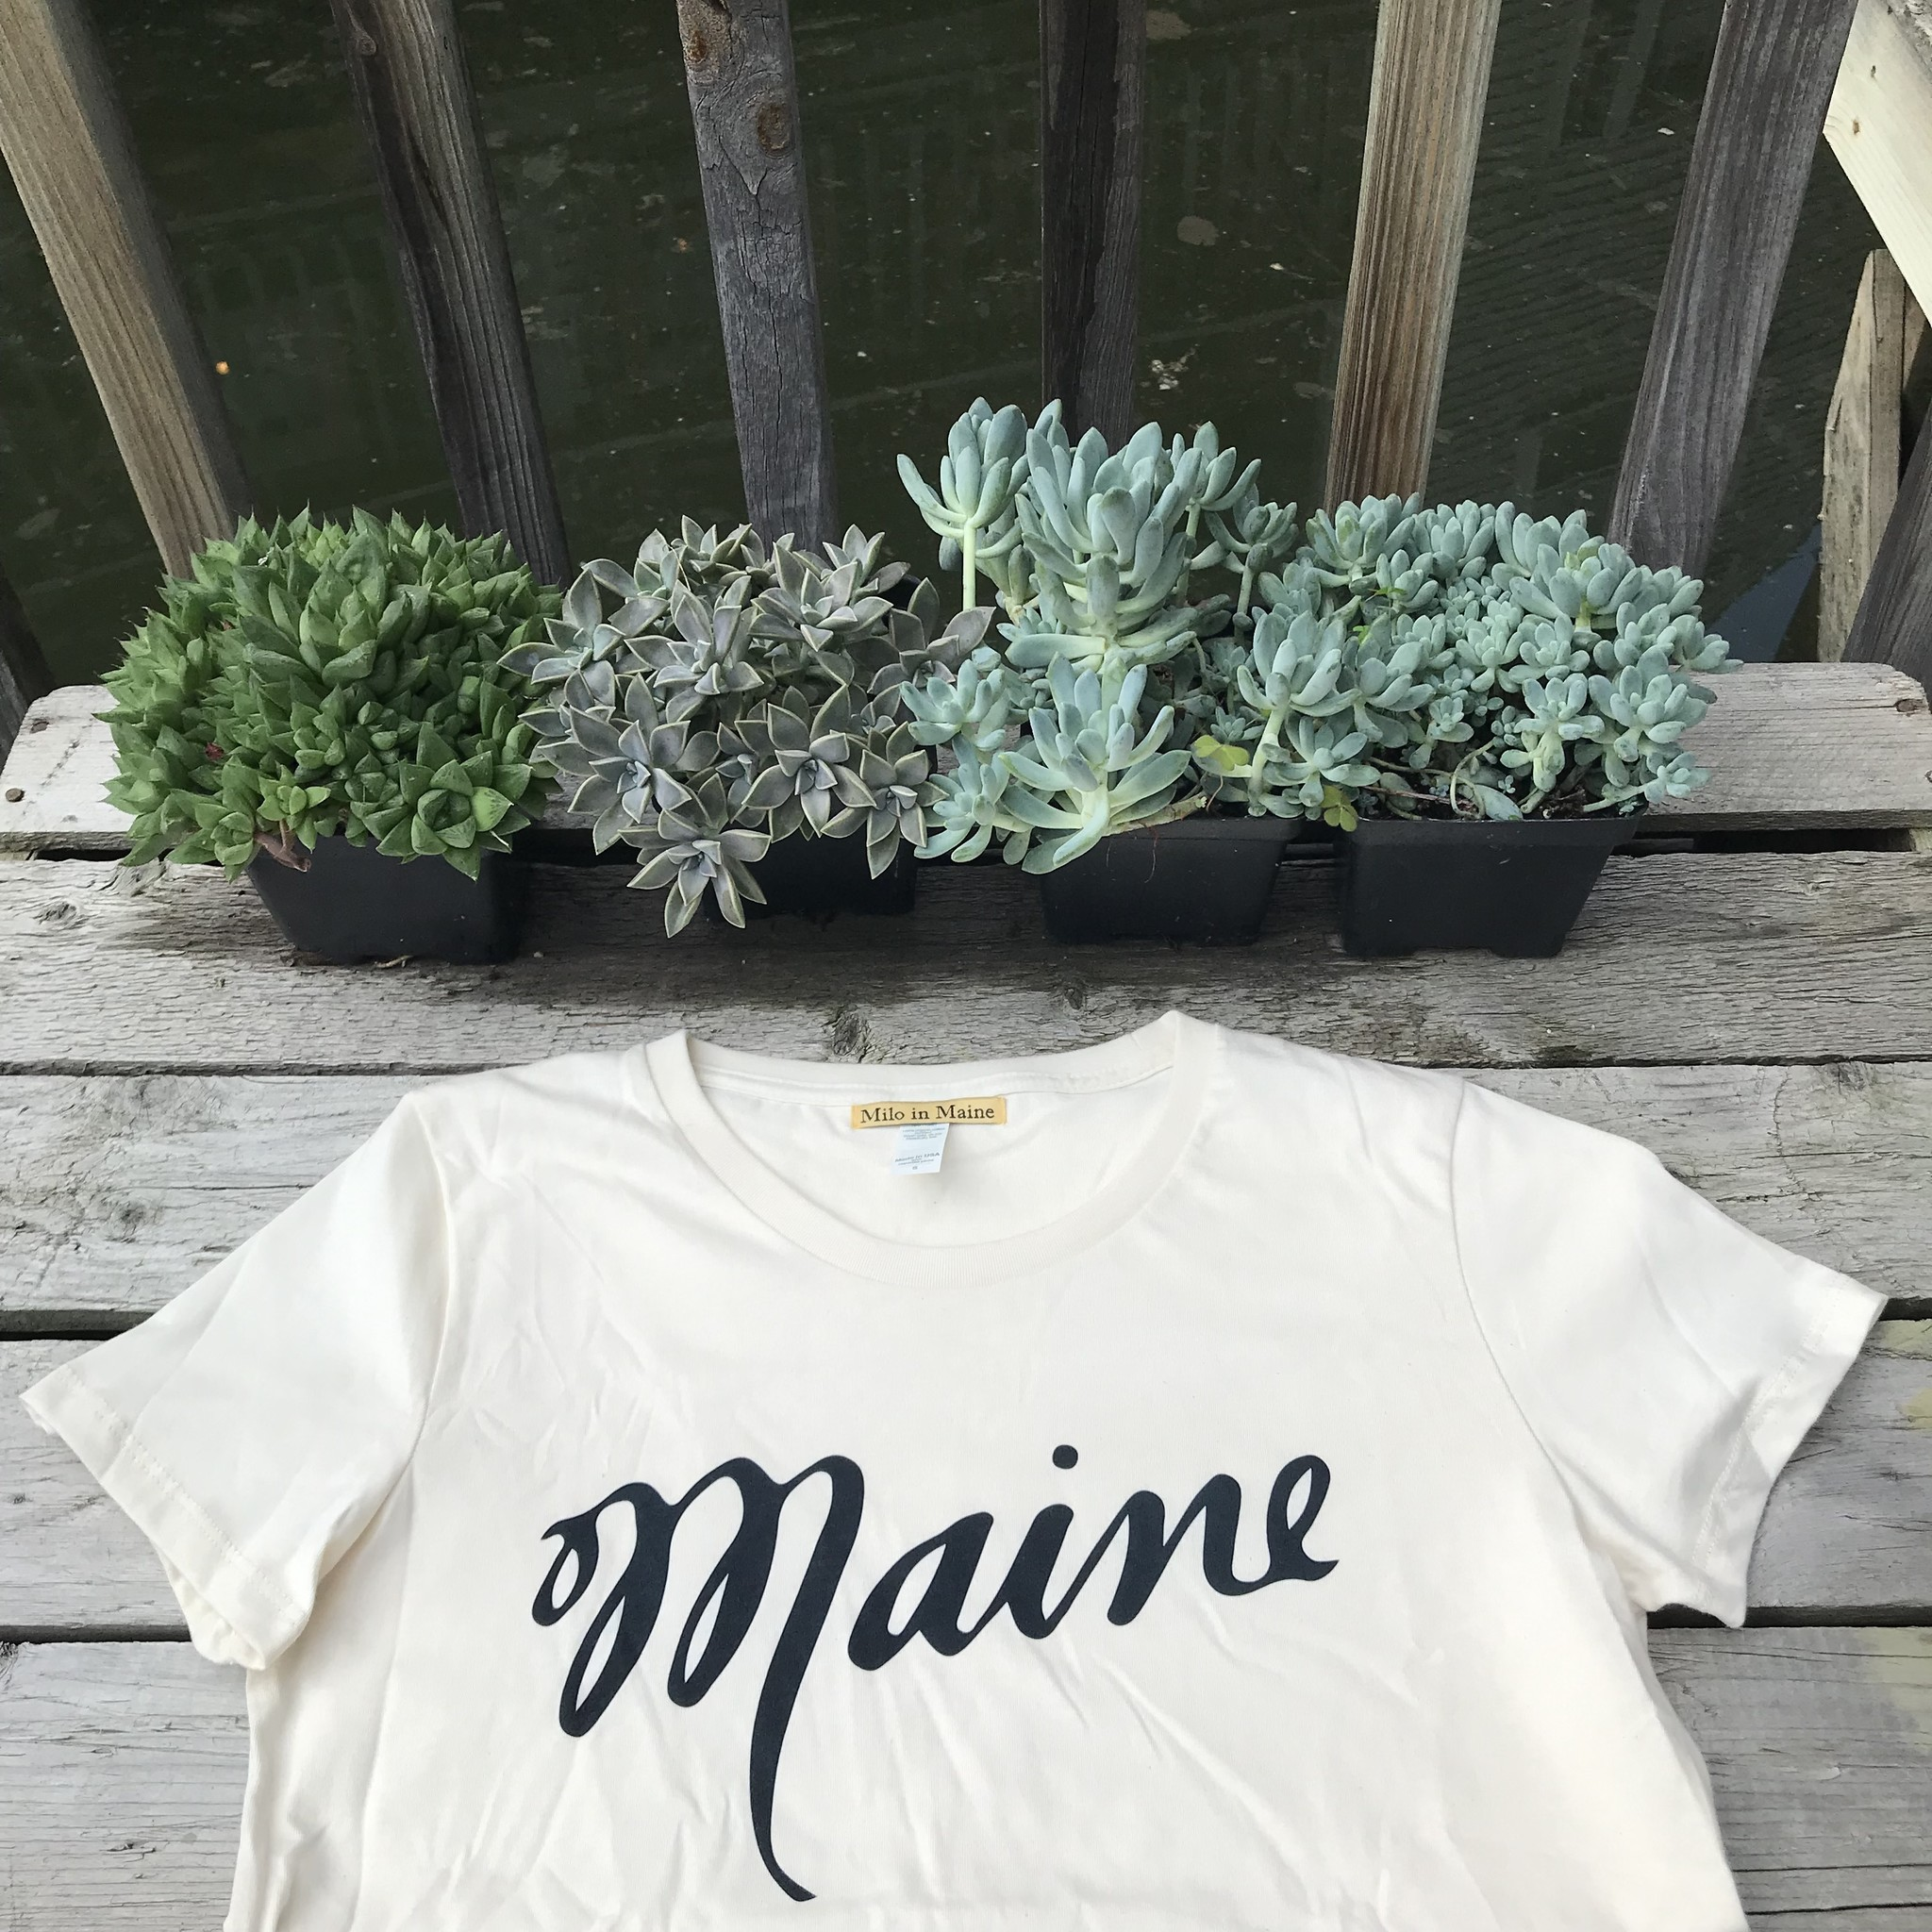 Milo In Maine Womens Tee Shirt - Maine Script Navy on White